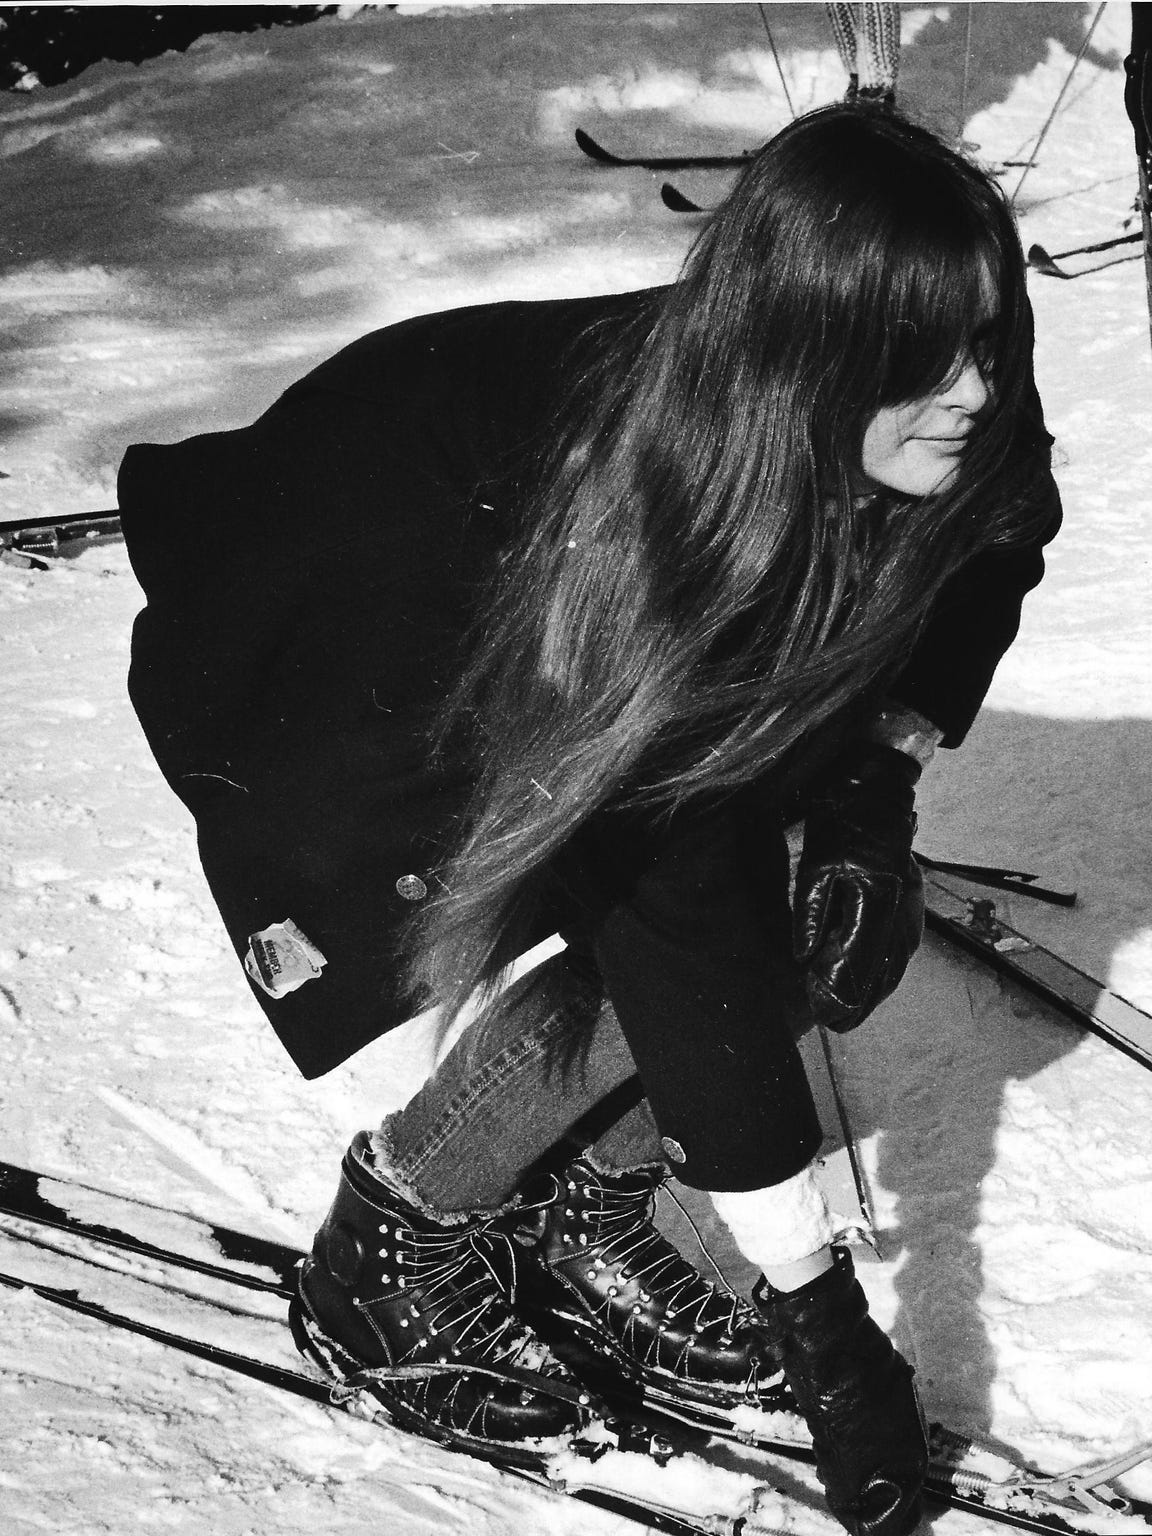 A photo of Nancy Henderson skiing in 1967. Two years